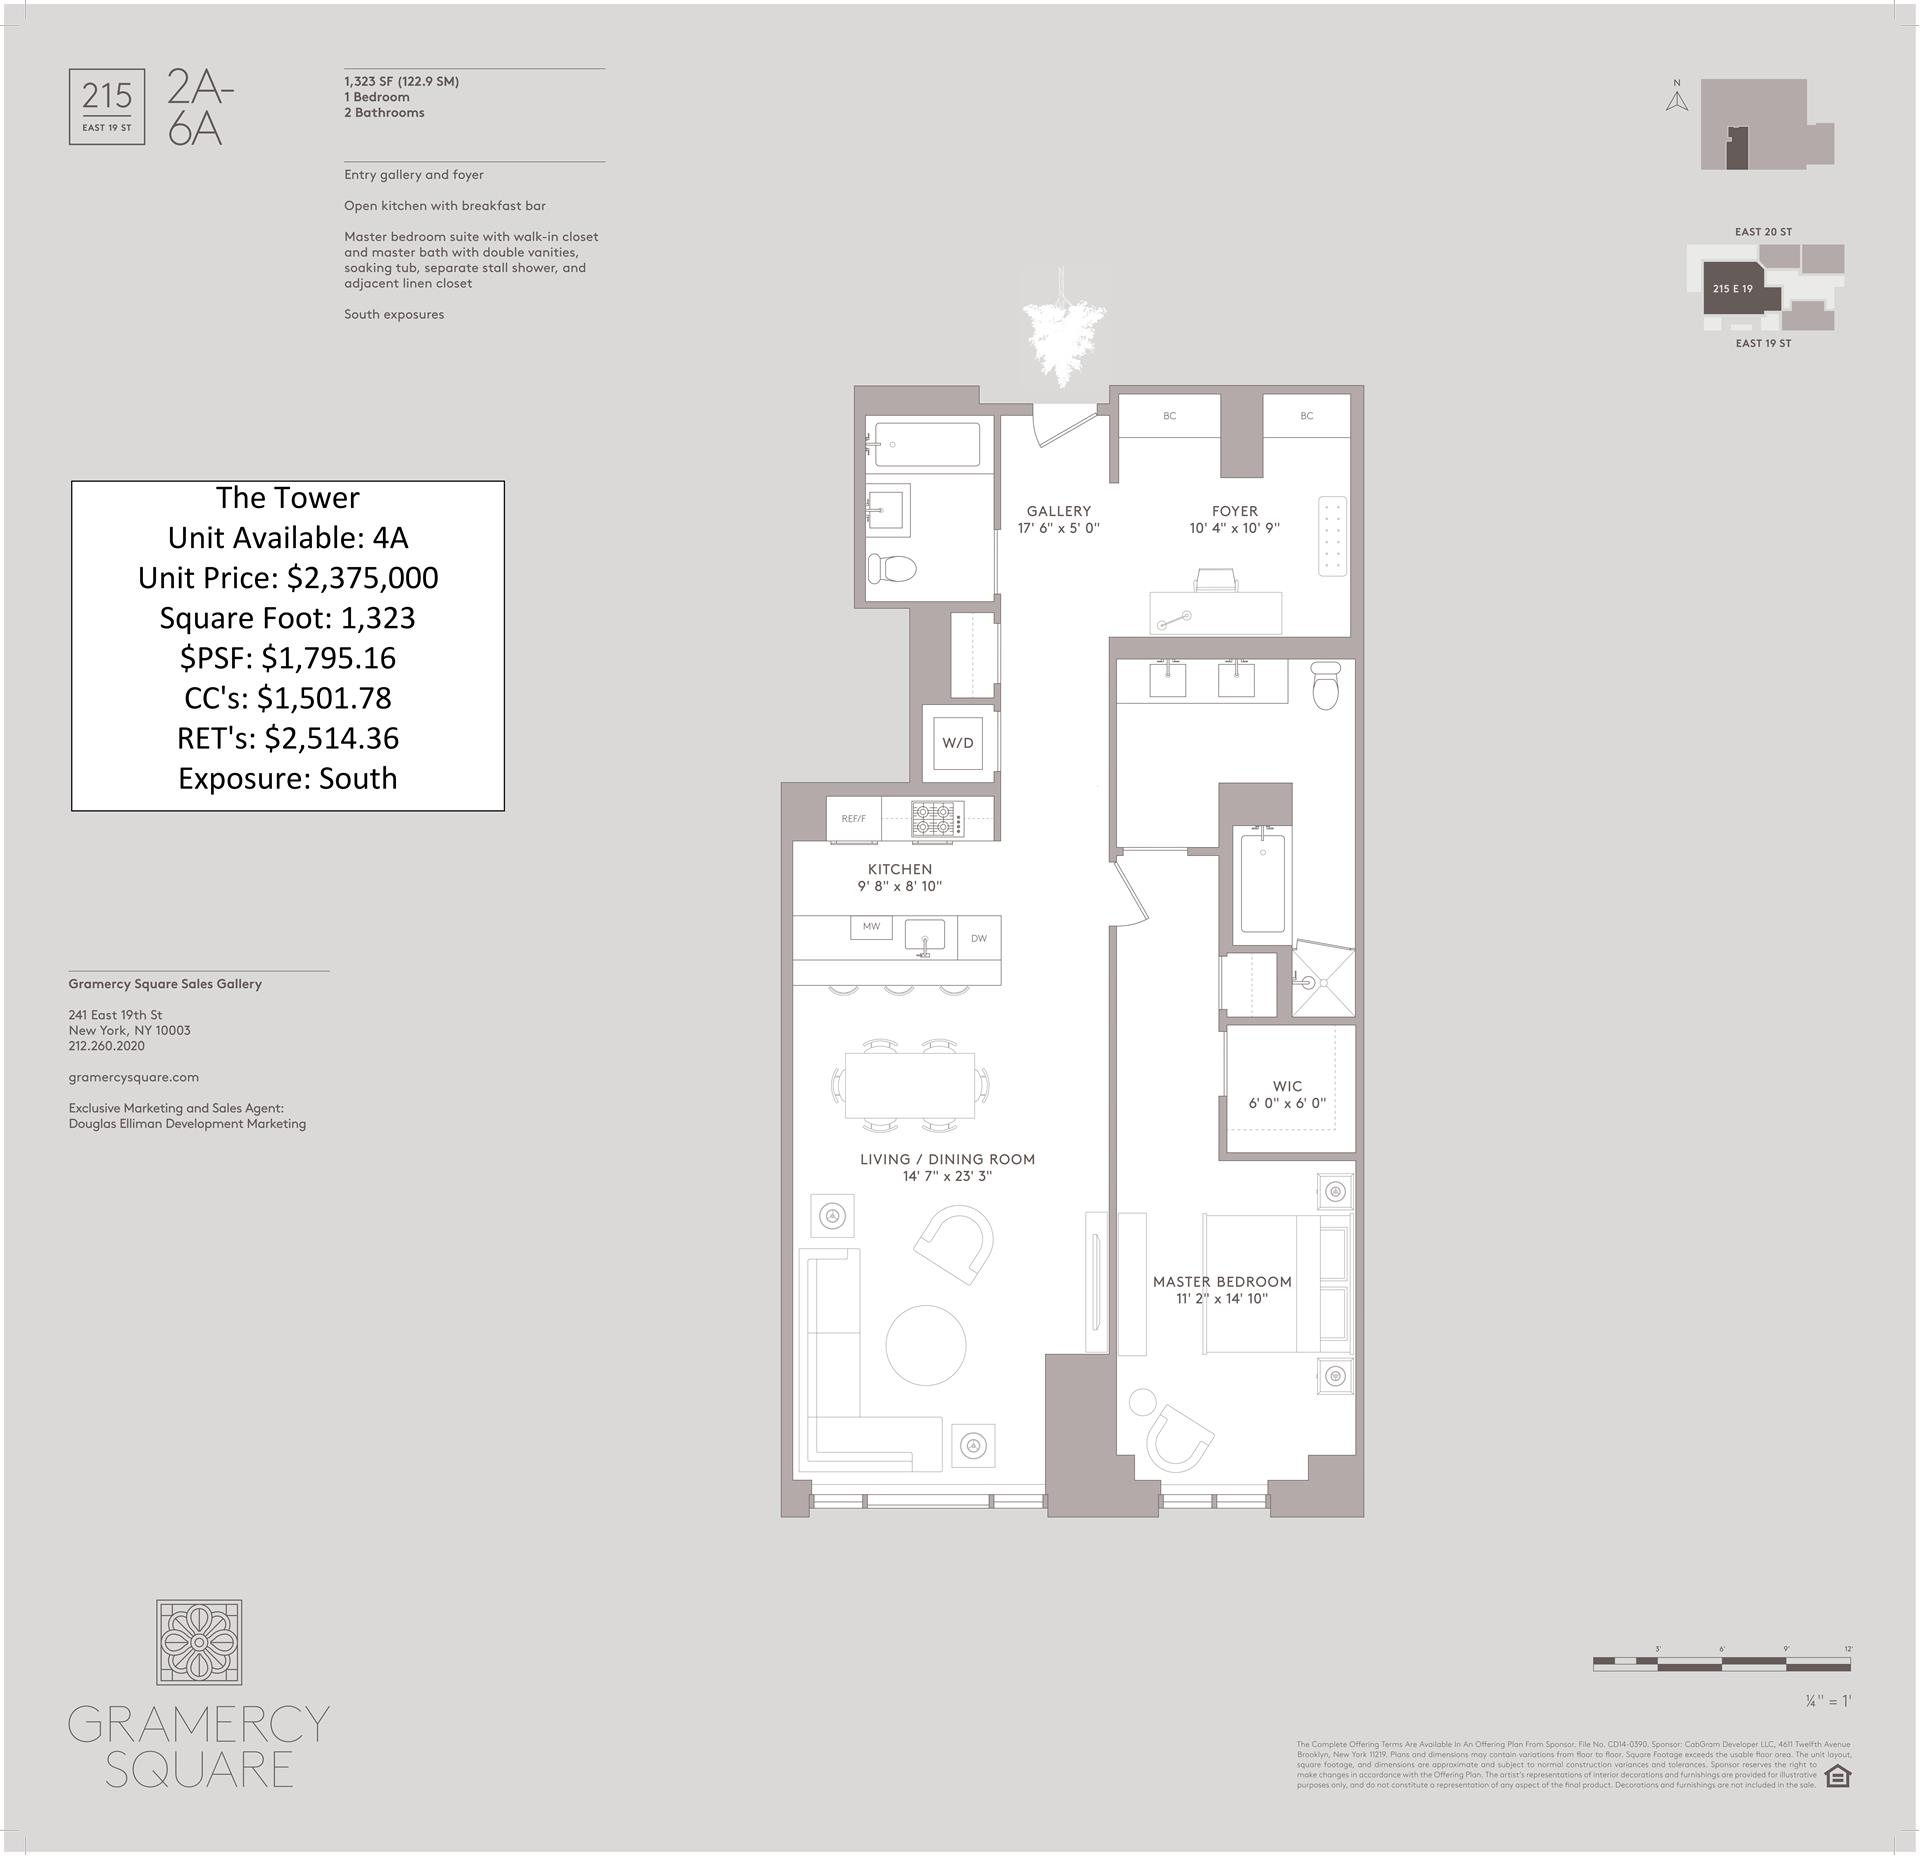 Floor plan of Gramercy Square, 215 East 19th Street, 4A - Gramercy - Union Square, New York